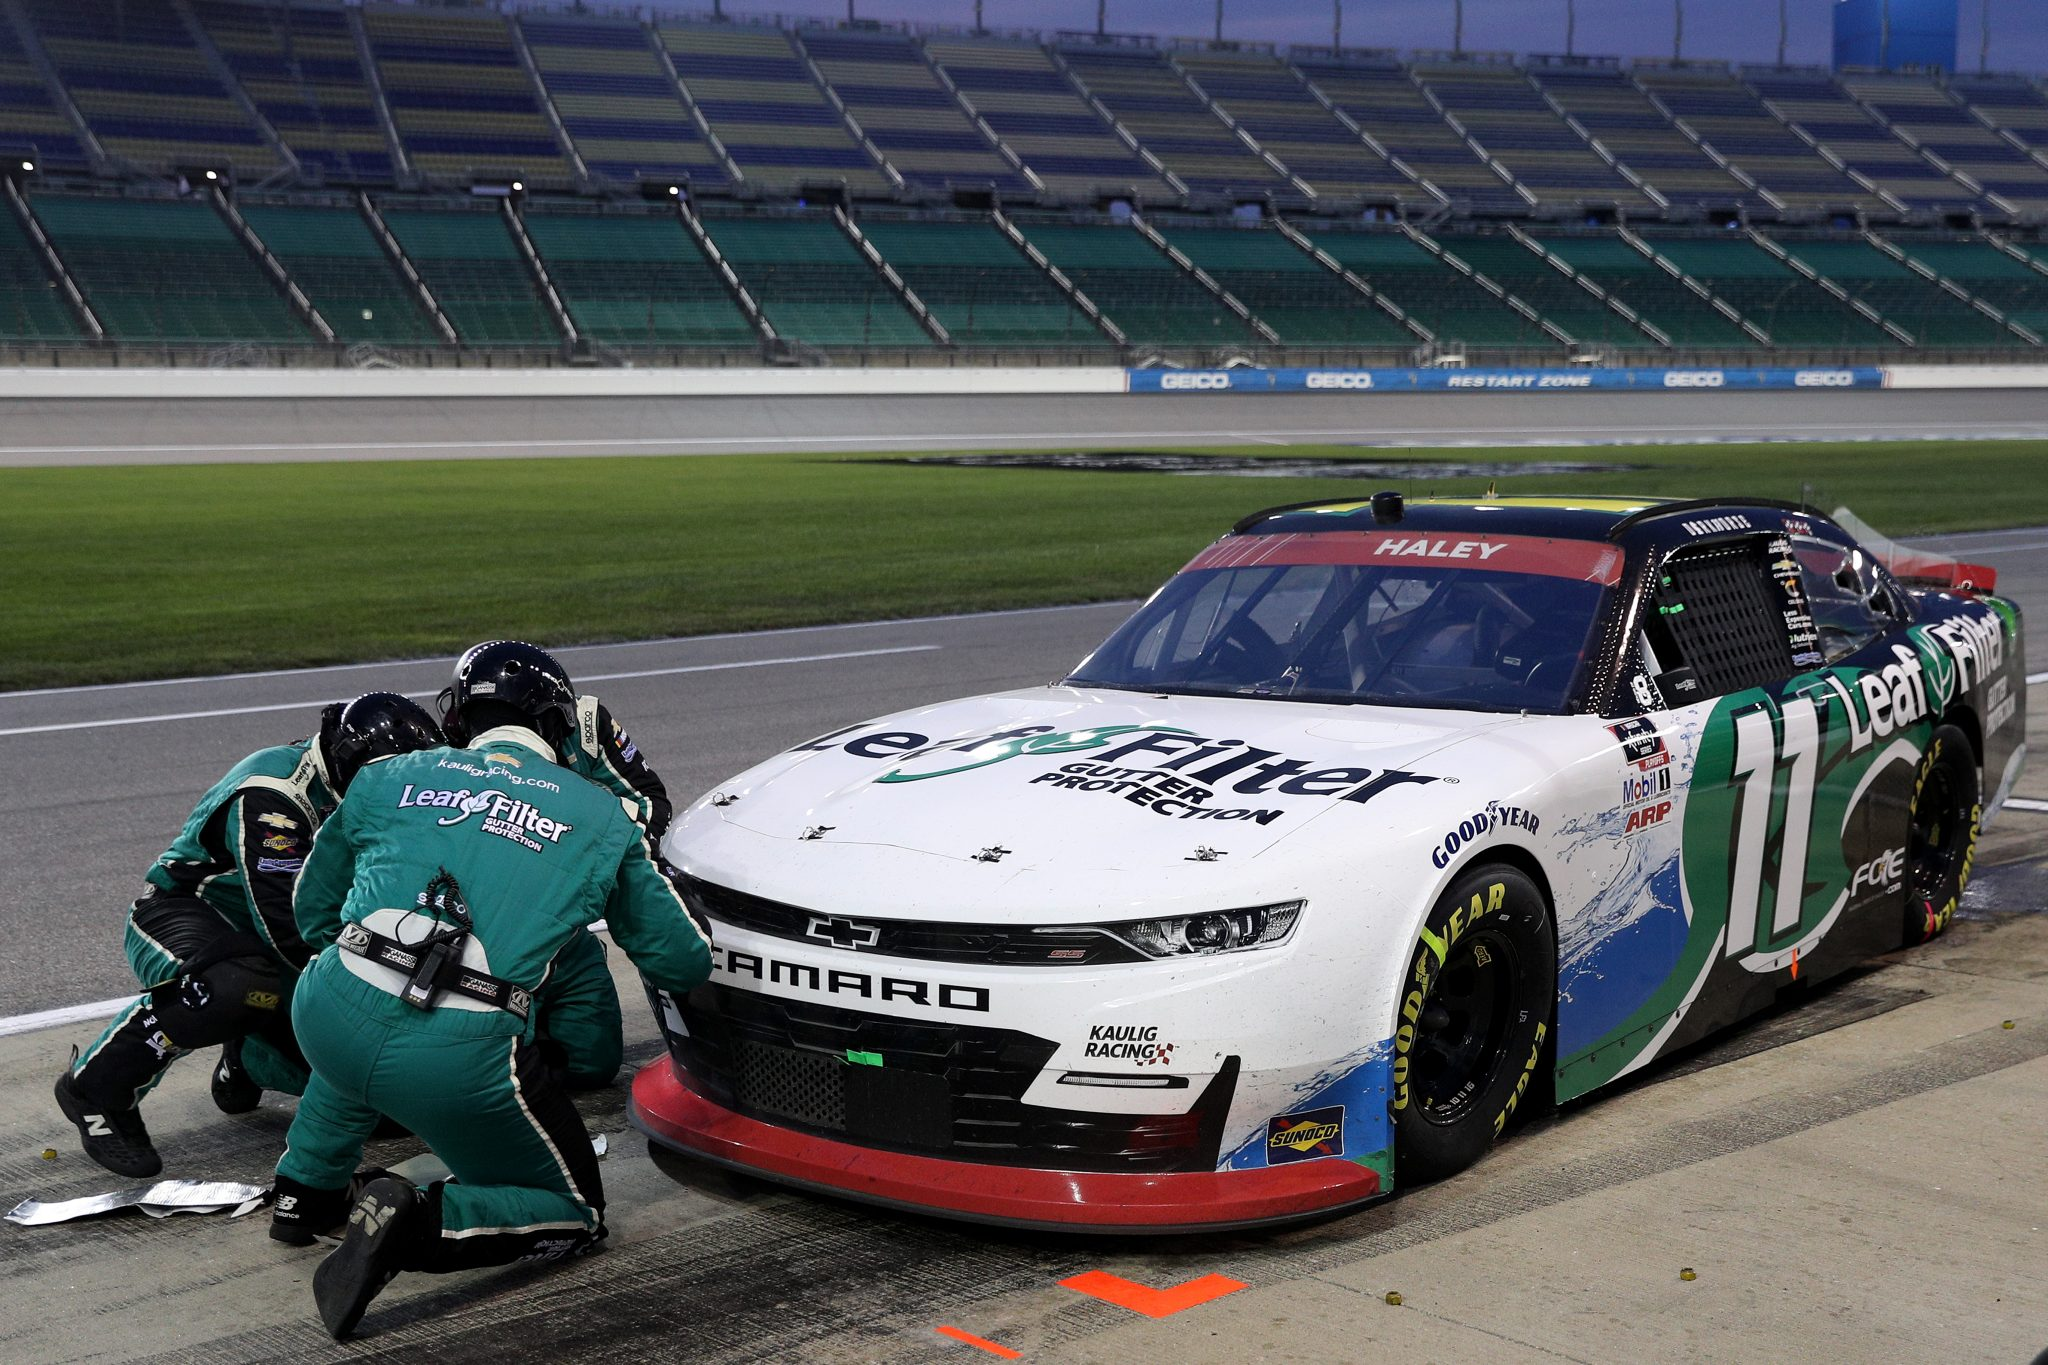 KANSAS CITY, KANSAS - OCTOBER 17: Justin Haley, driver of the #11 LeafFilter Gutter Protection Chevrolet, pits during the NASCAR Xfinity Series Kansas Lottery 300 at Kansas Speedway on October 17, 2020 in Kansas City, Kansas. (Photo by Chris Graythen/Getty Images) | Getty Images